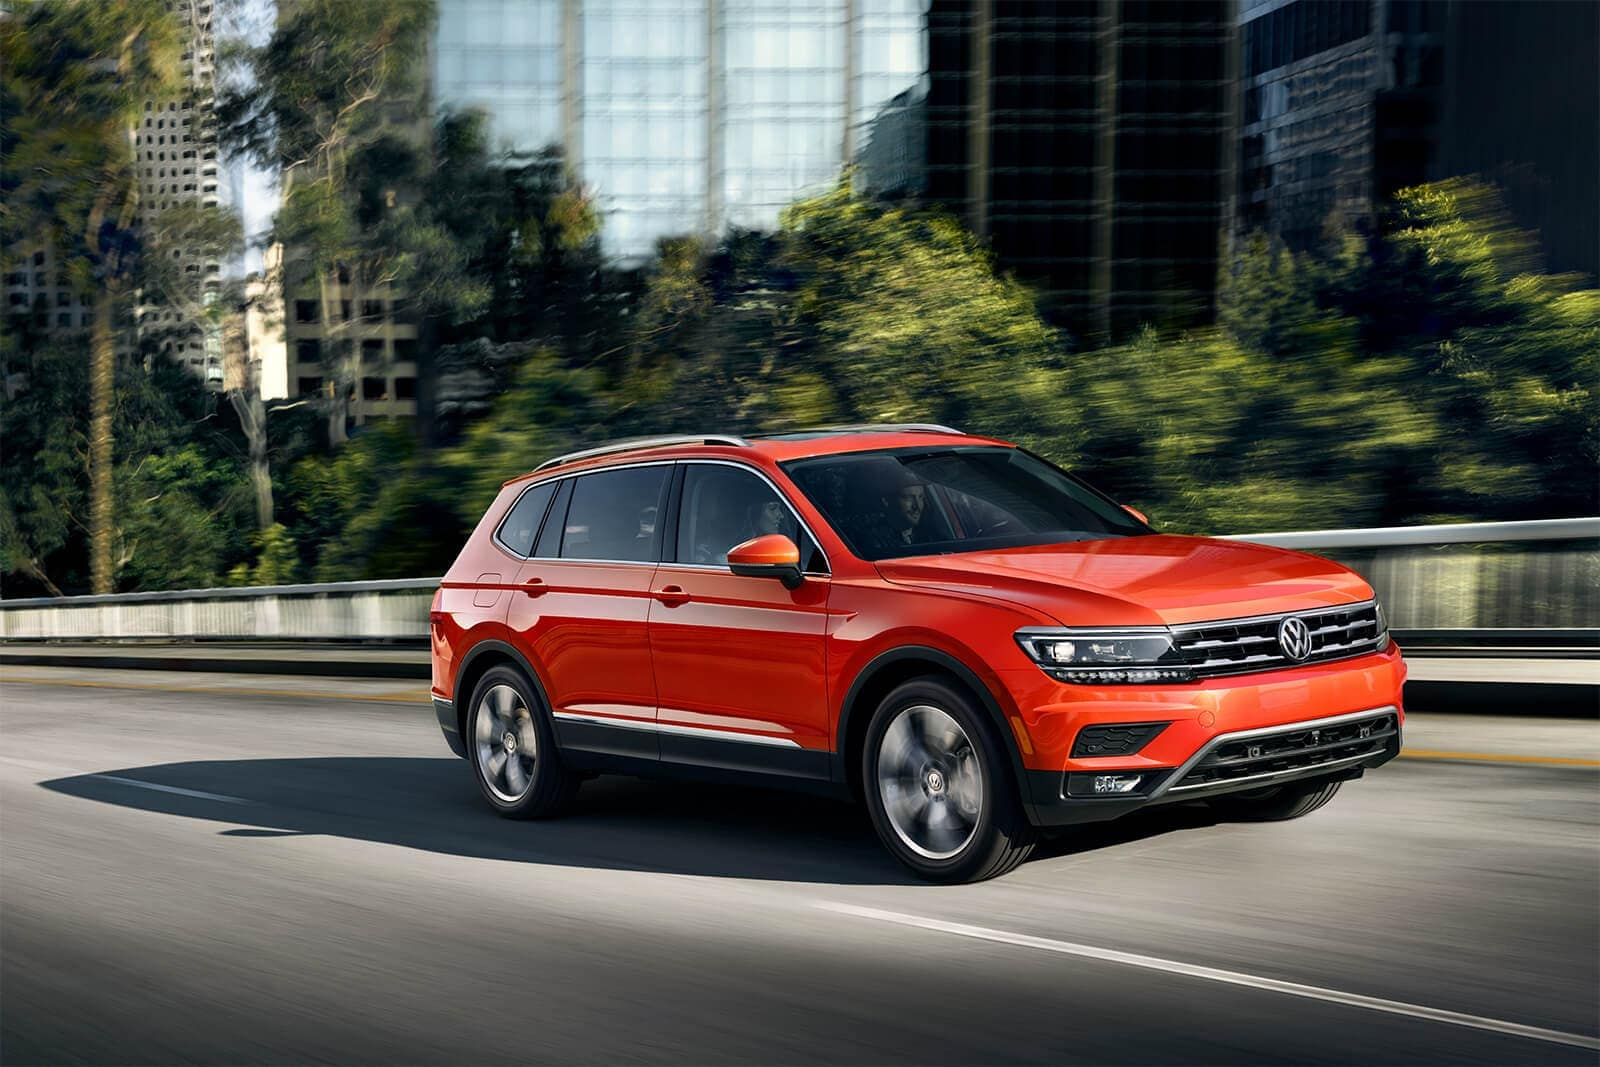 2019 Volkswagen Tiguan in Habanero Orange Metallic